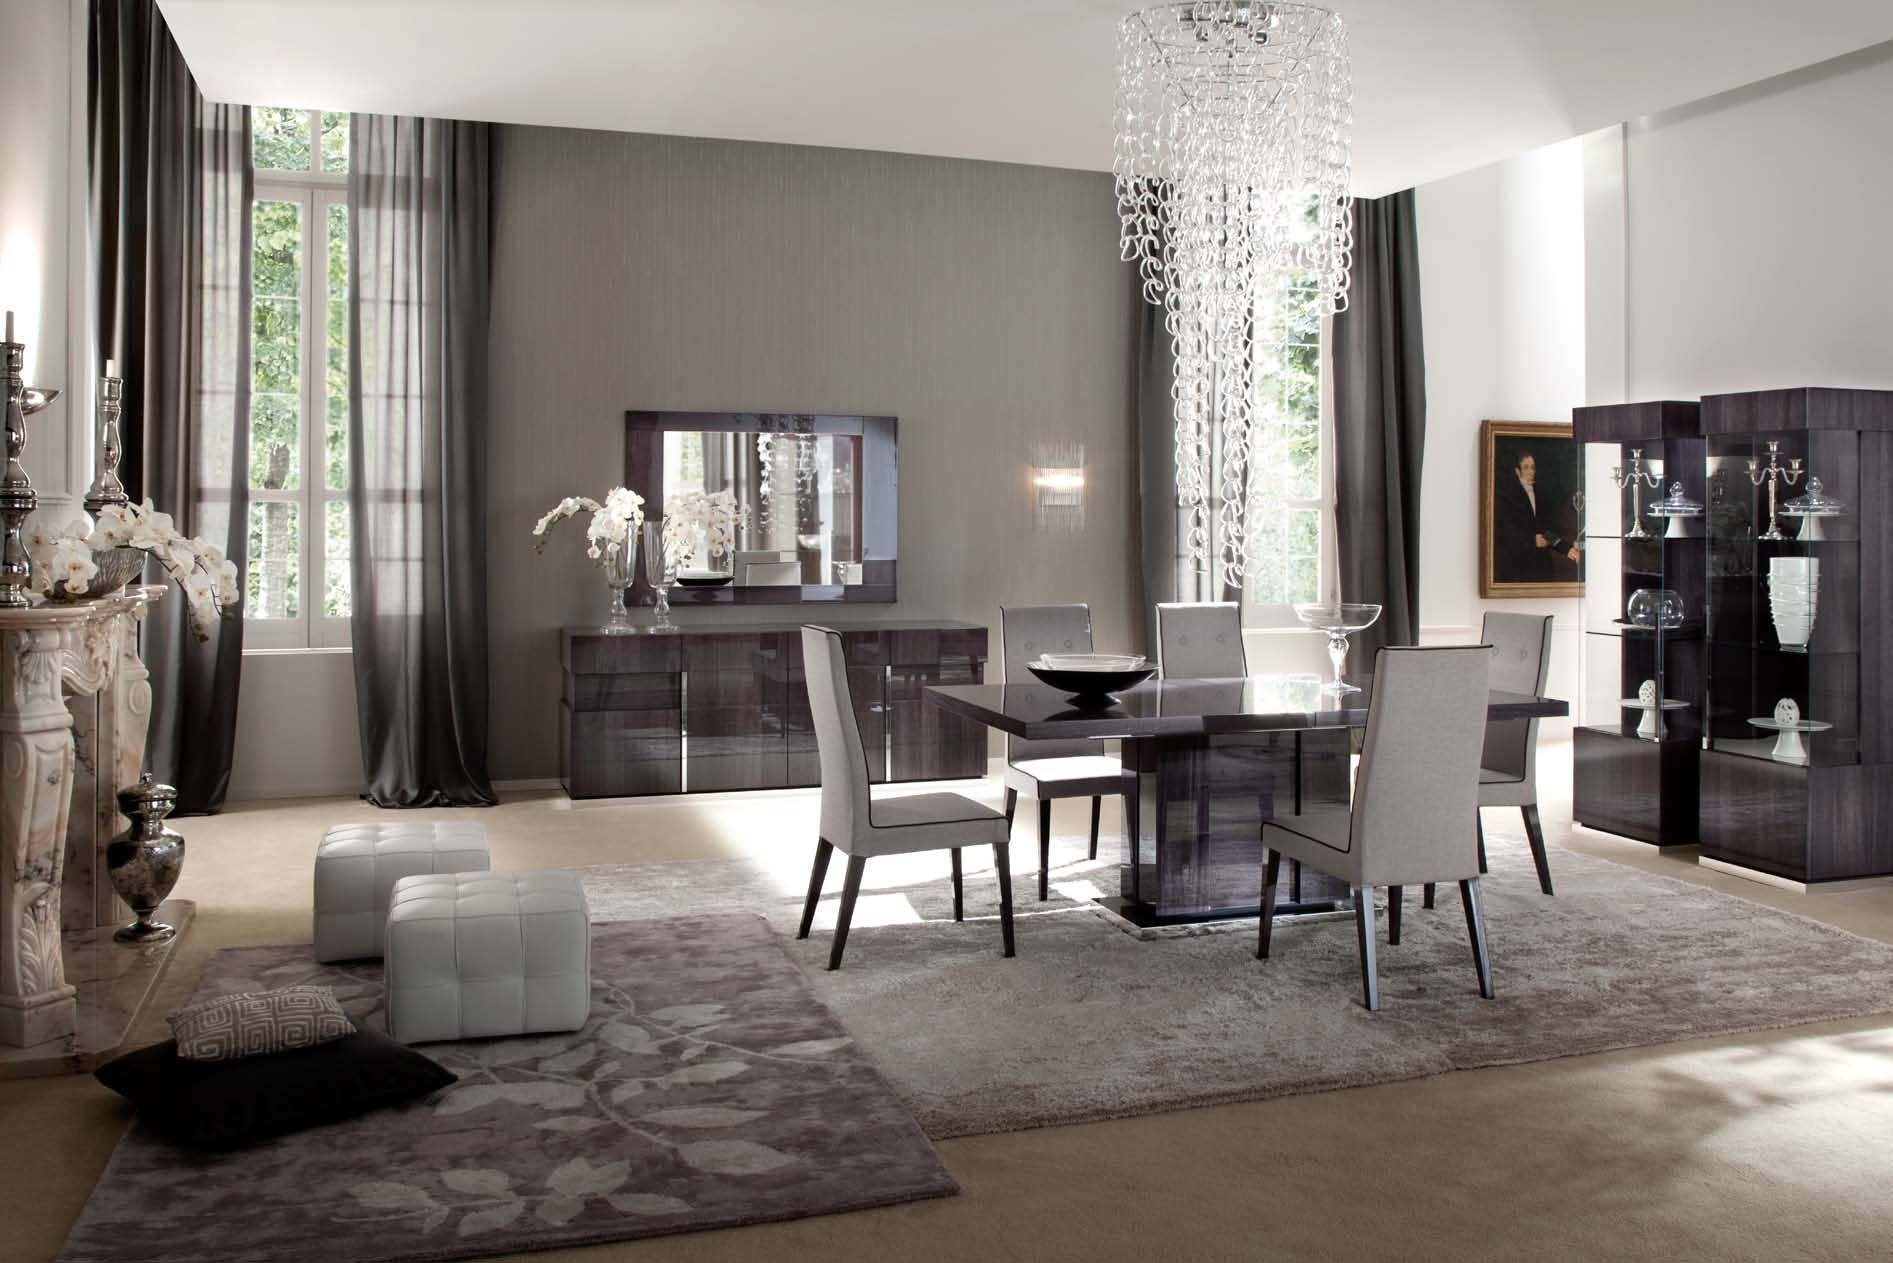 Contemporary Italian Dining Room Furniture Glamorous Italian Sofas Montecarlo Contemporary Dining Room Furniture Inspiration